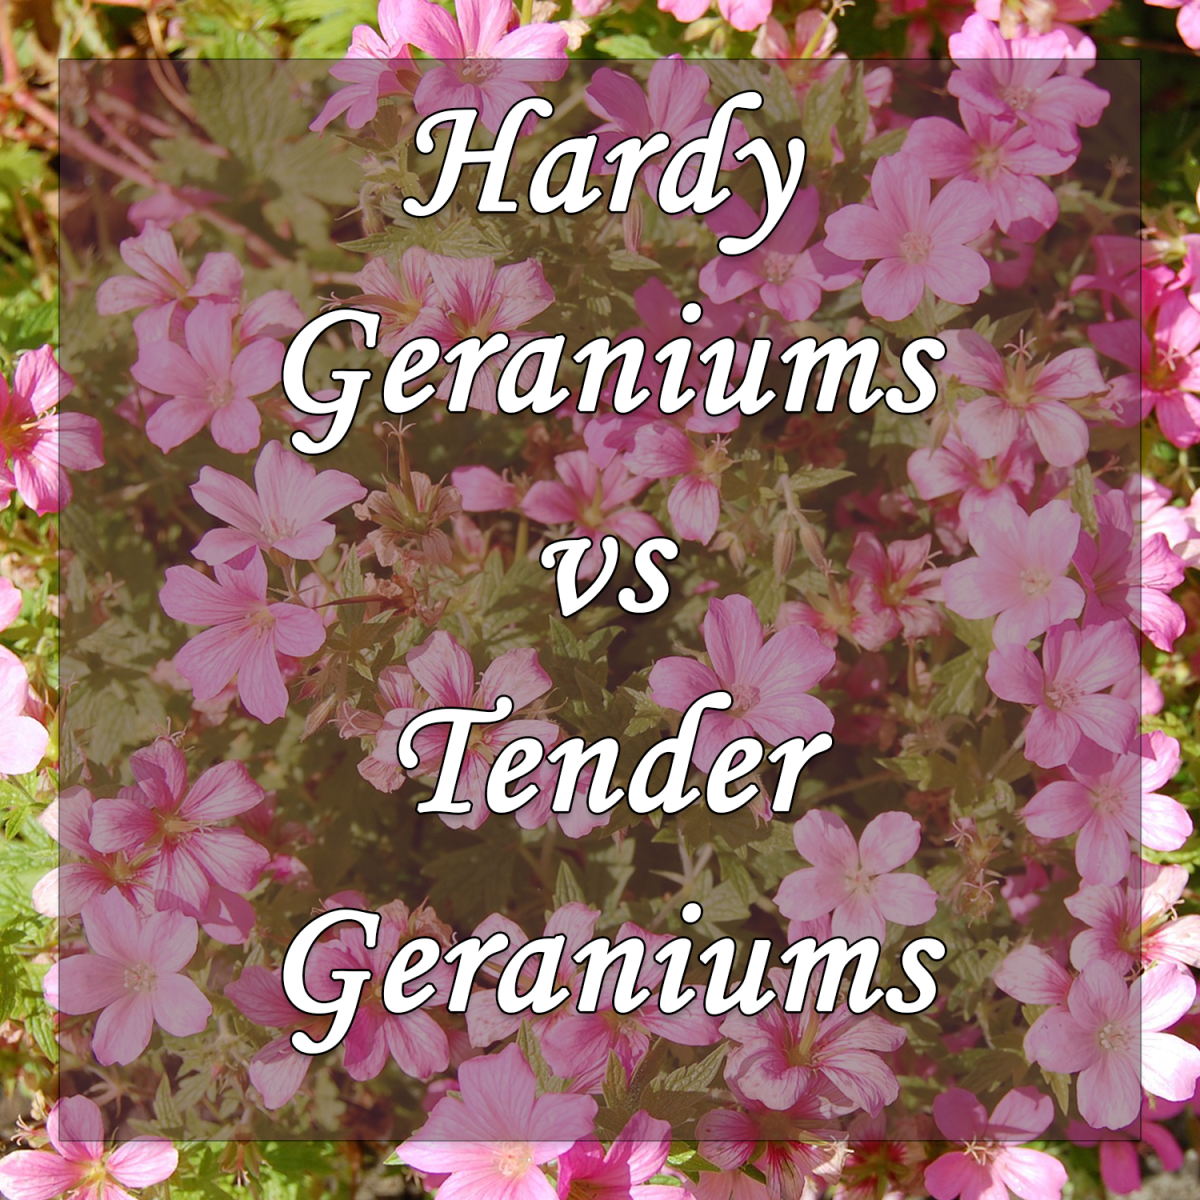 Hardy Geraniums vs Tender Geraniums: Which Should You Plant in Your Garden?